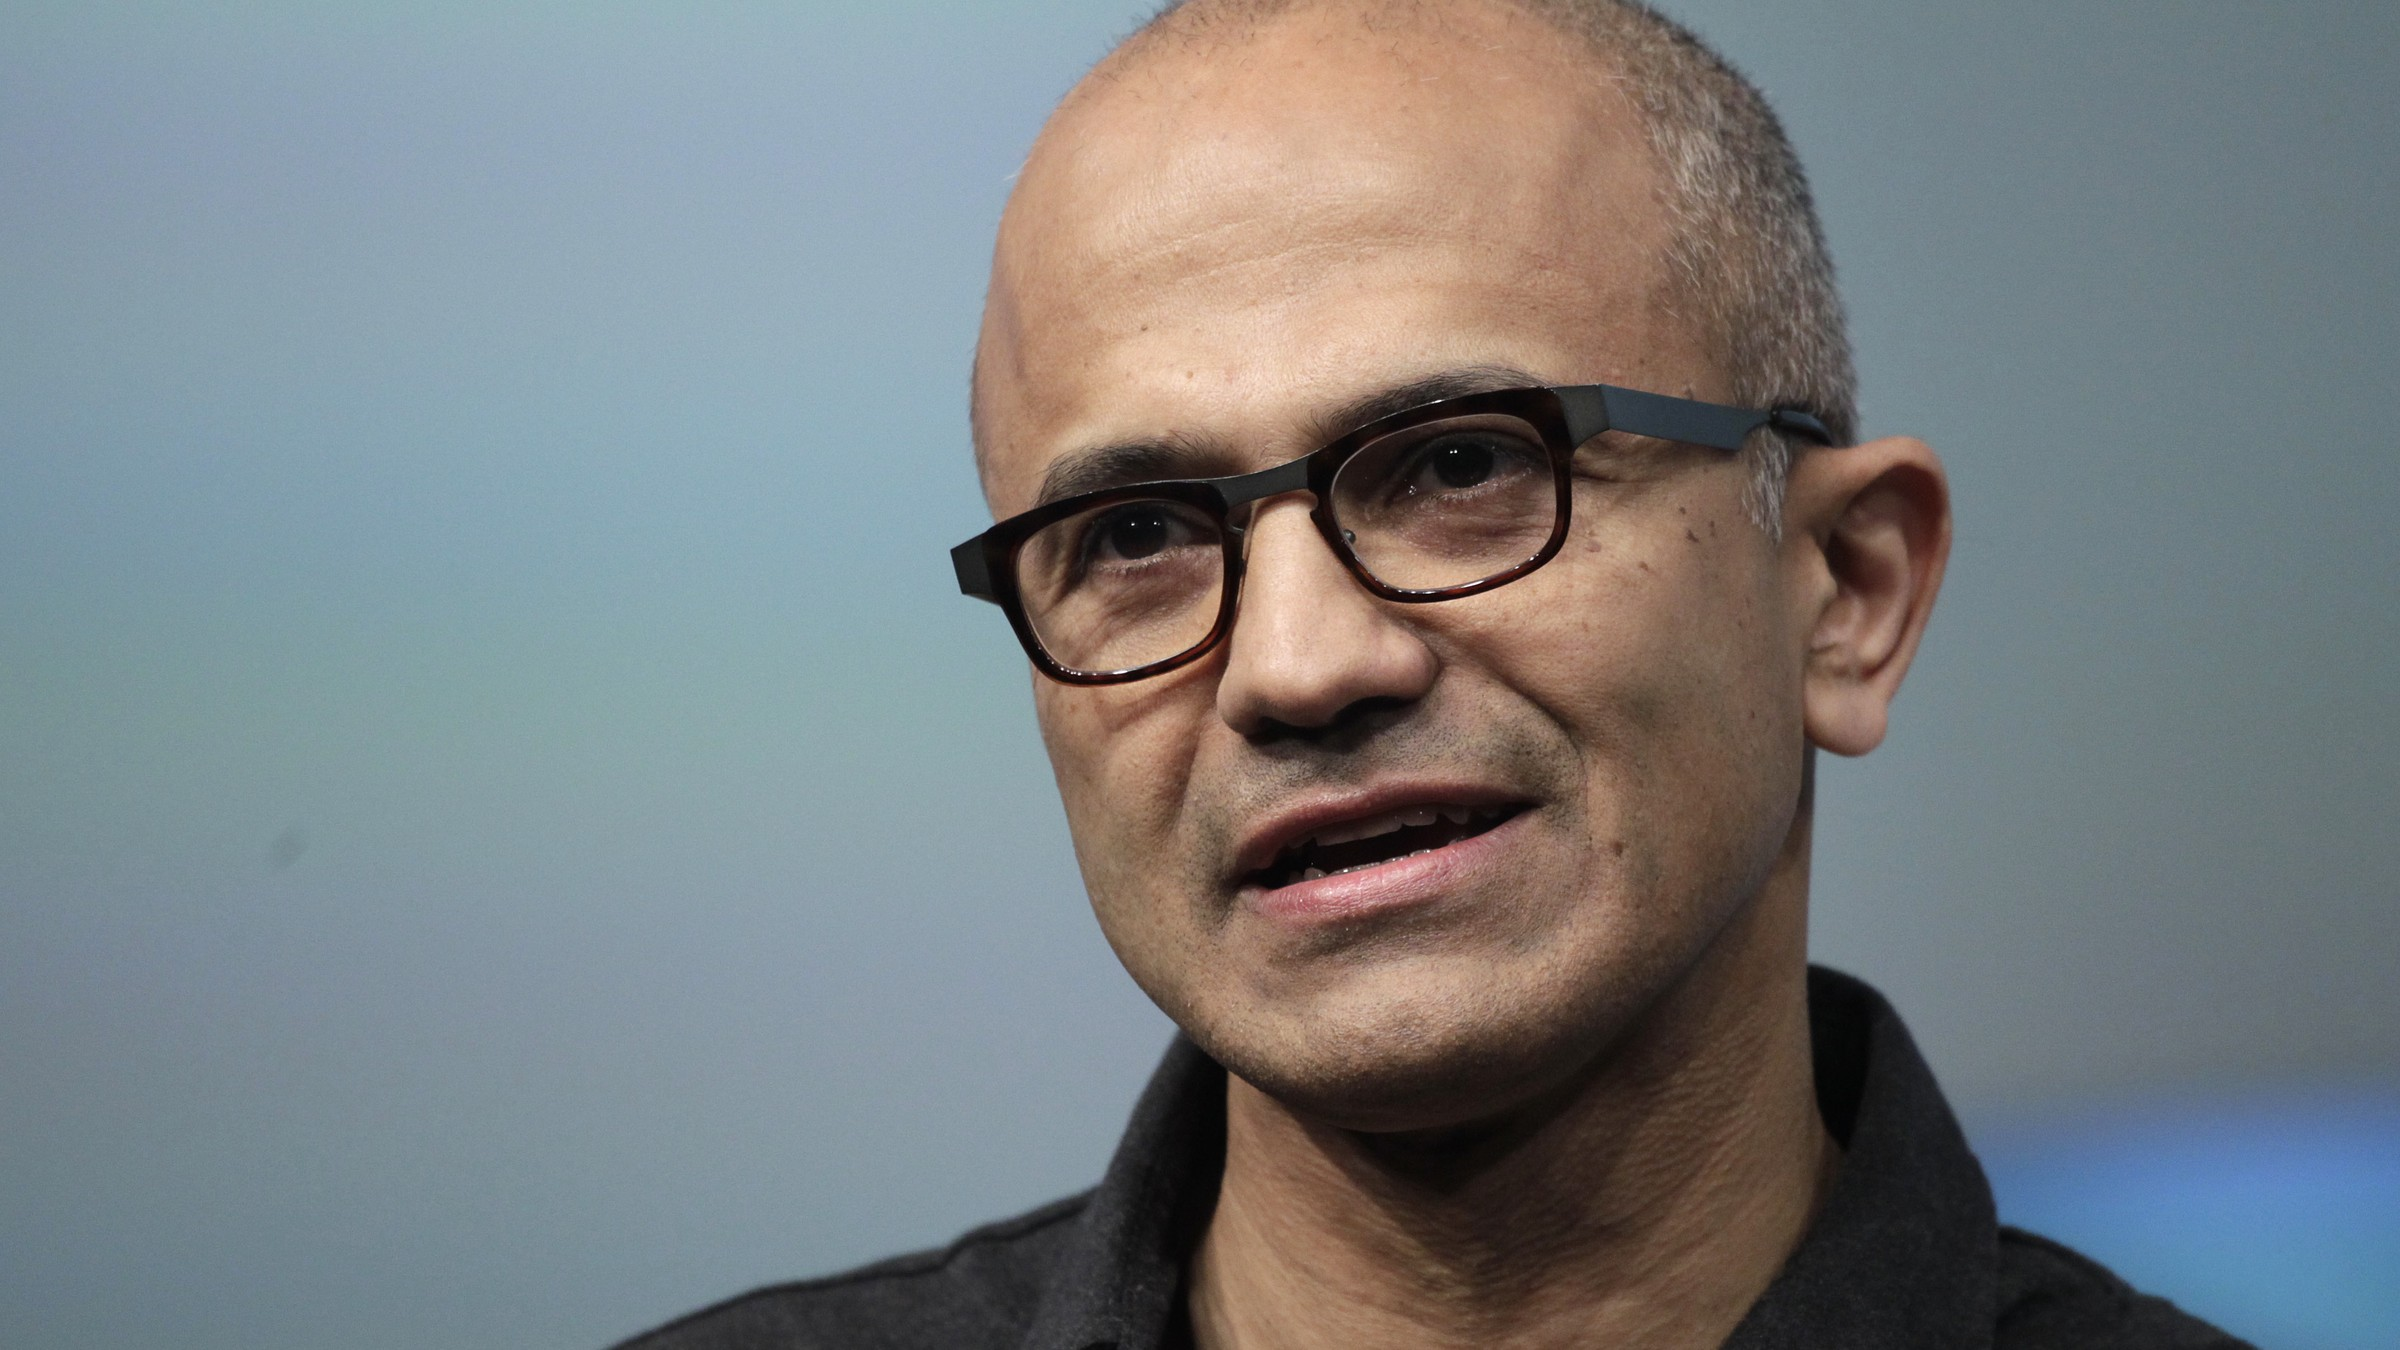 In this May 20, 2014 file photo, Satya Nadella, CEO of Microsoft, talks during the introduction the Surface Pro 3 tablet device at a media preview in New York. Microsoft on Thursday, July 17, 2014 announced it will lay off up to 18,000 workers over the next year. (AP Photo/Mark Lennihan, File)